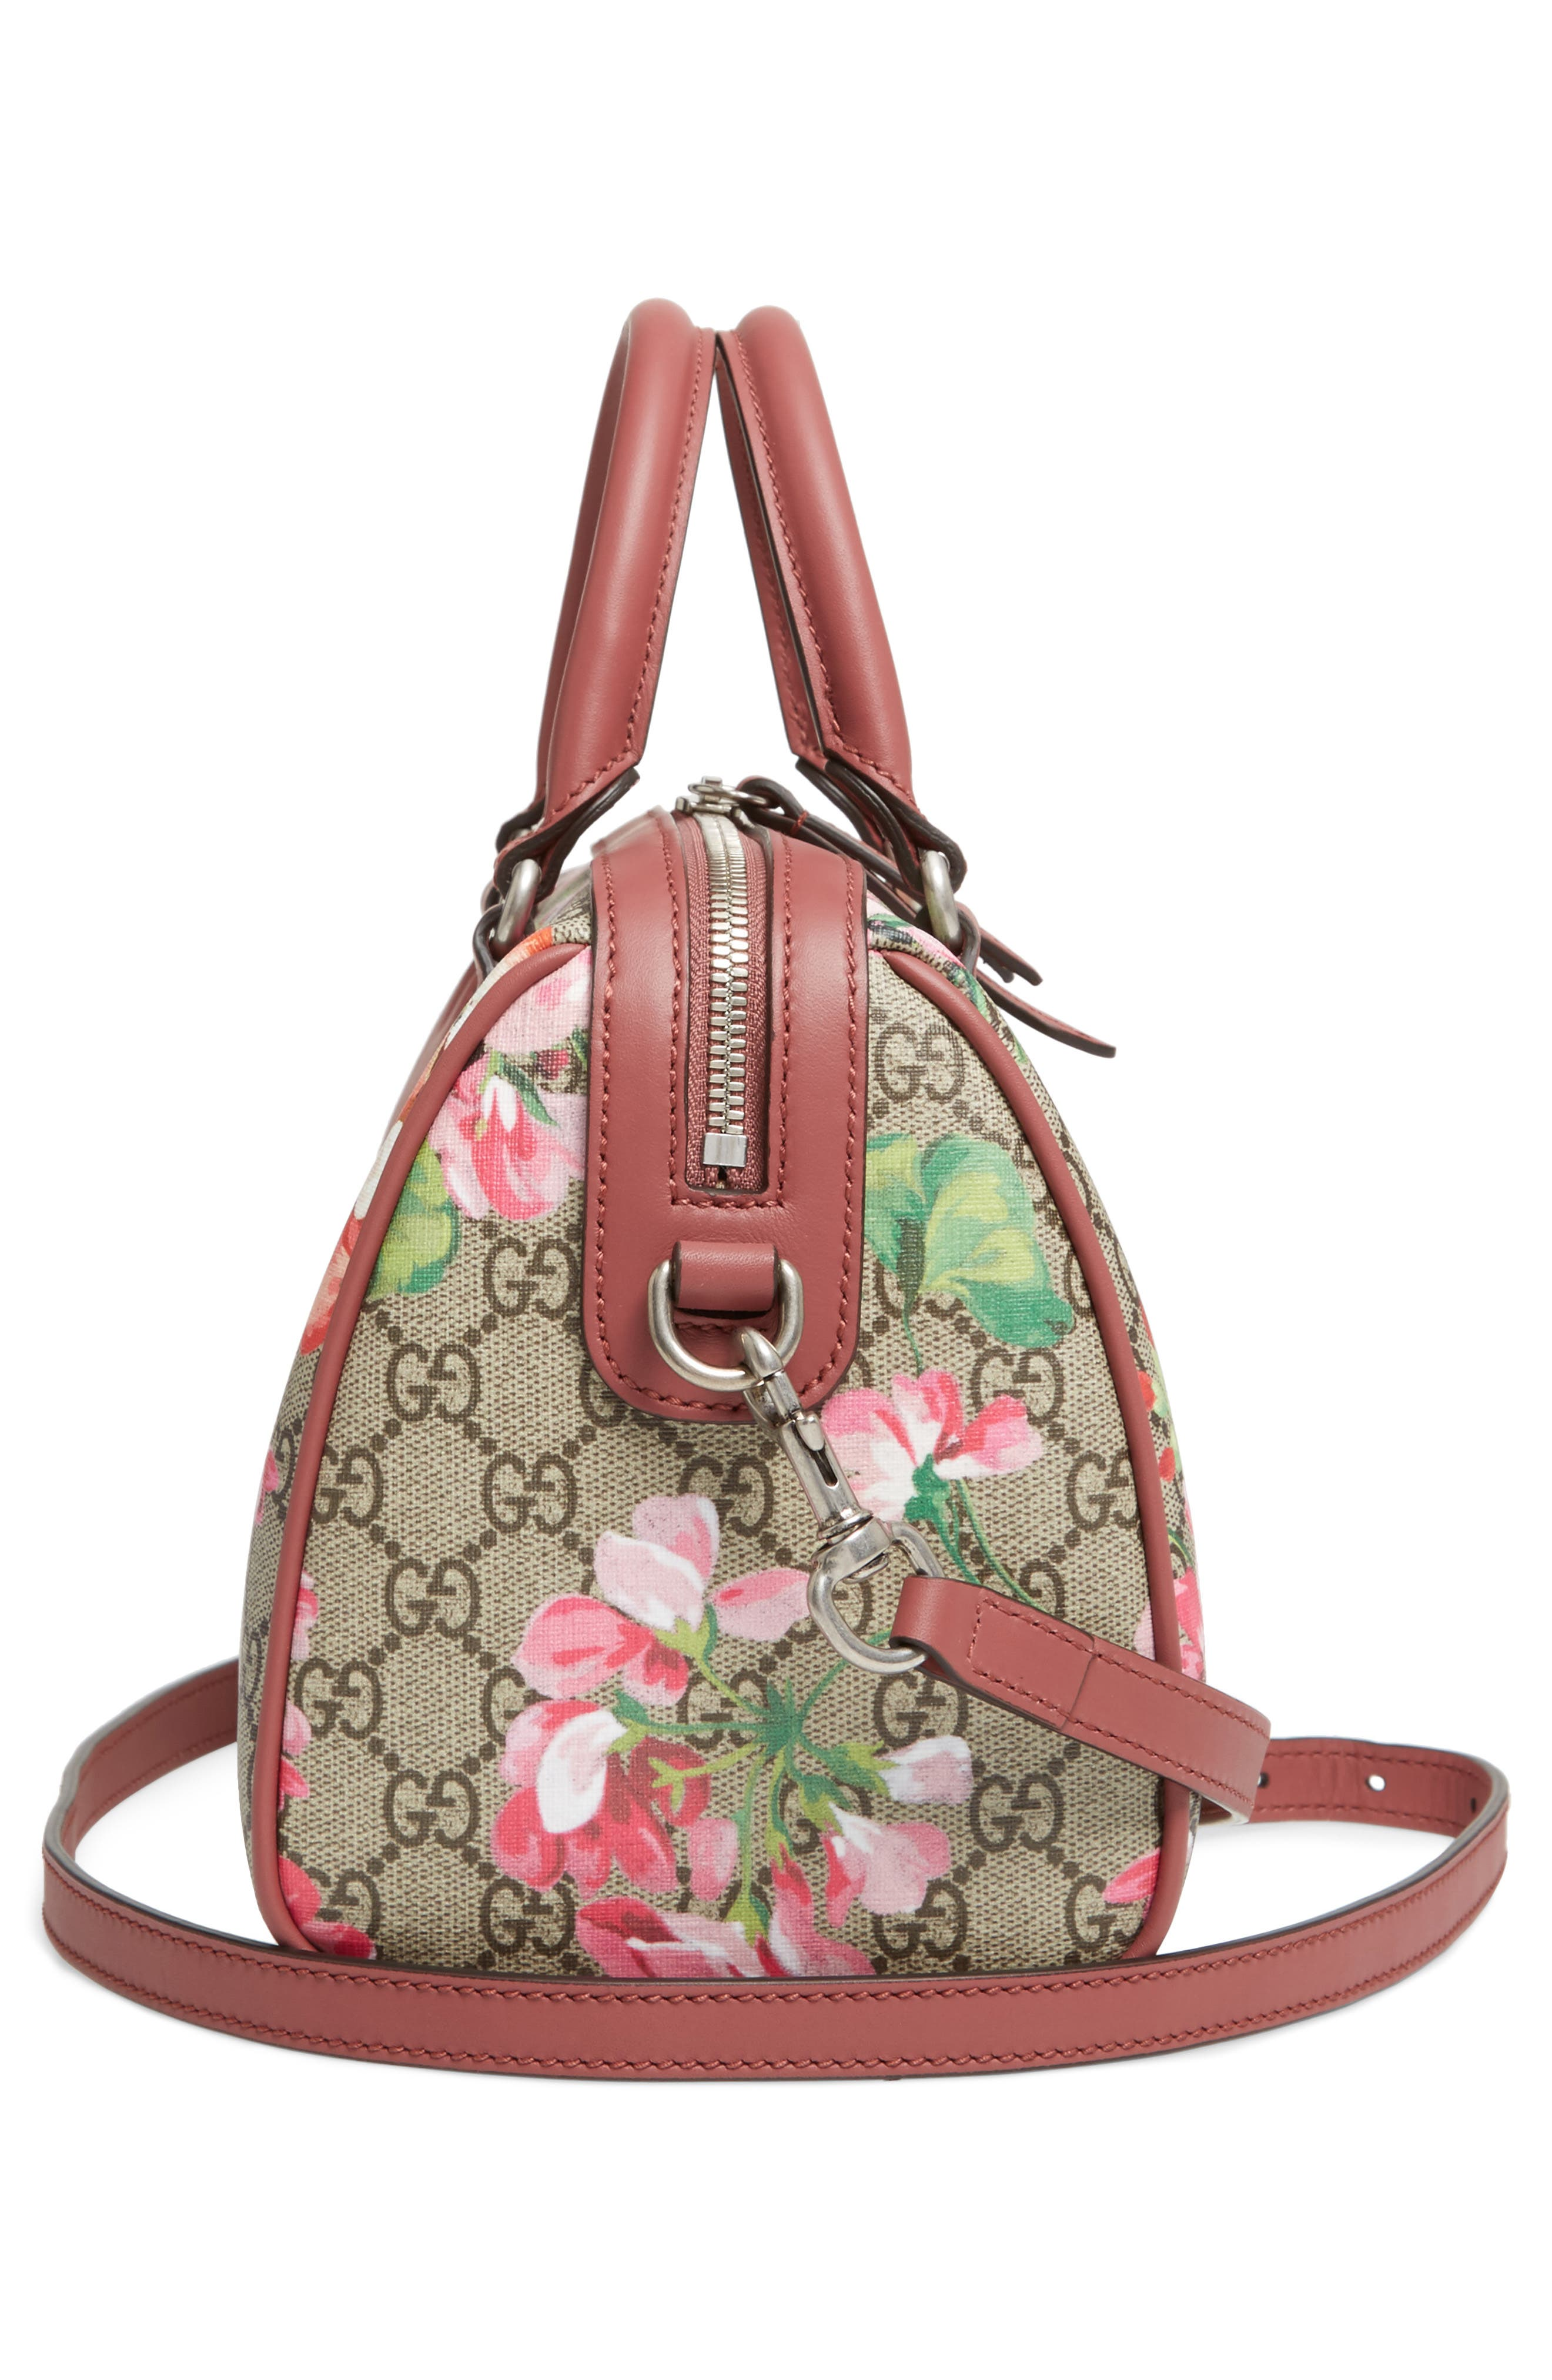 Small Blooms Top Handle GG Supreme Canvas Bag,                             Alternate thumbnail 4, color,                             Multi/Dry Rose